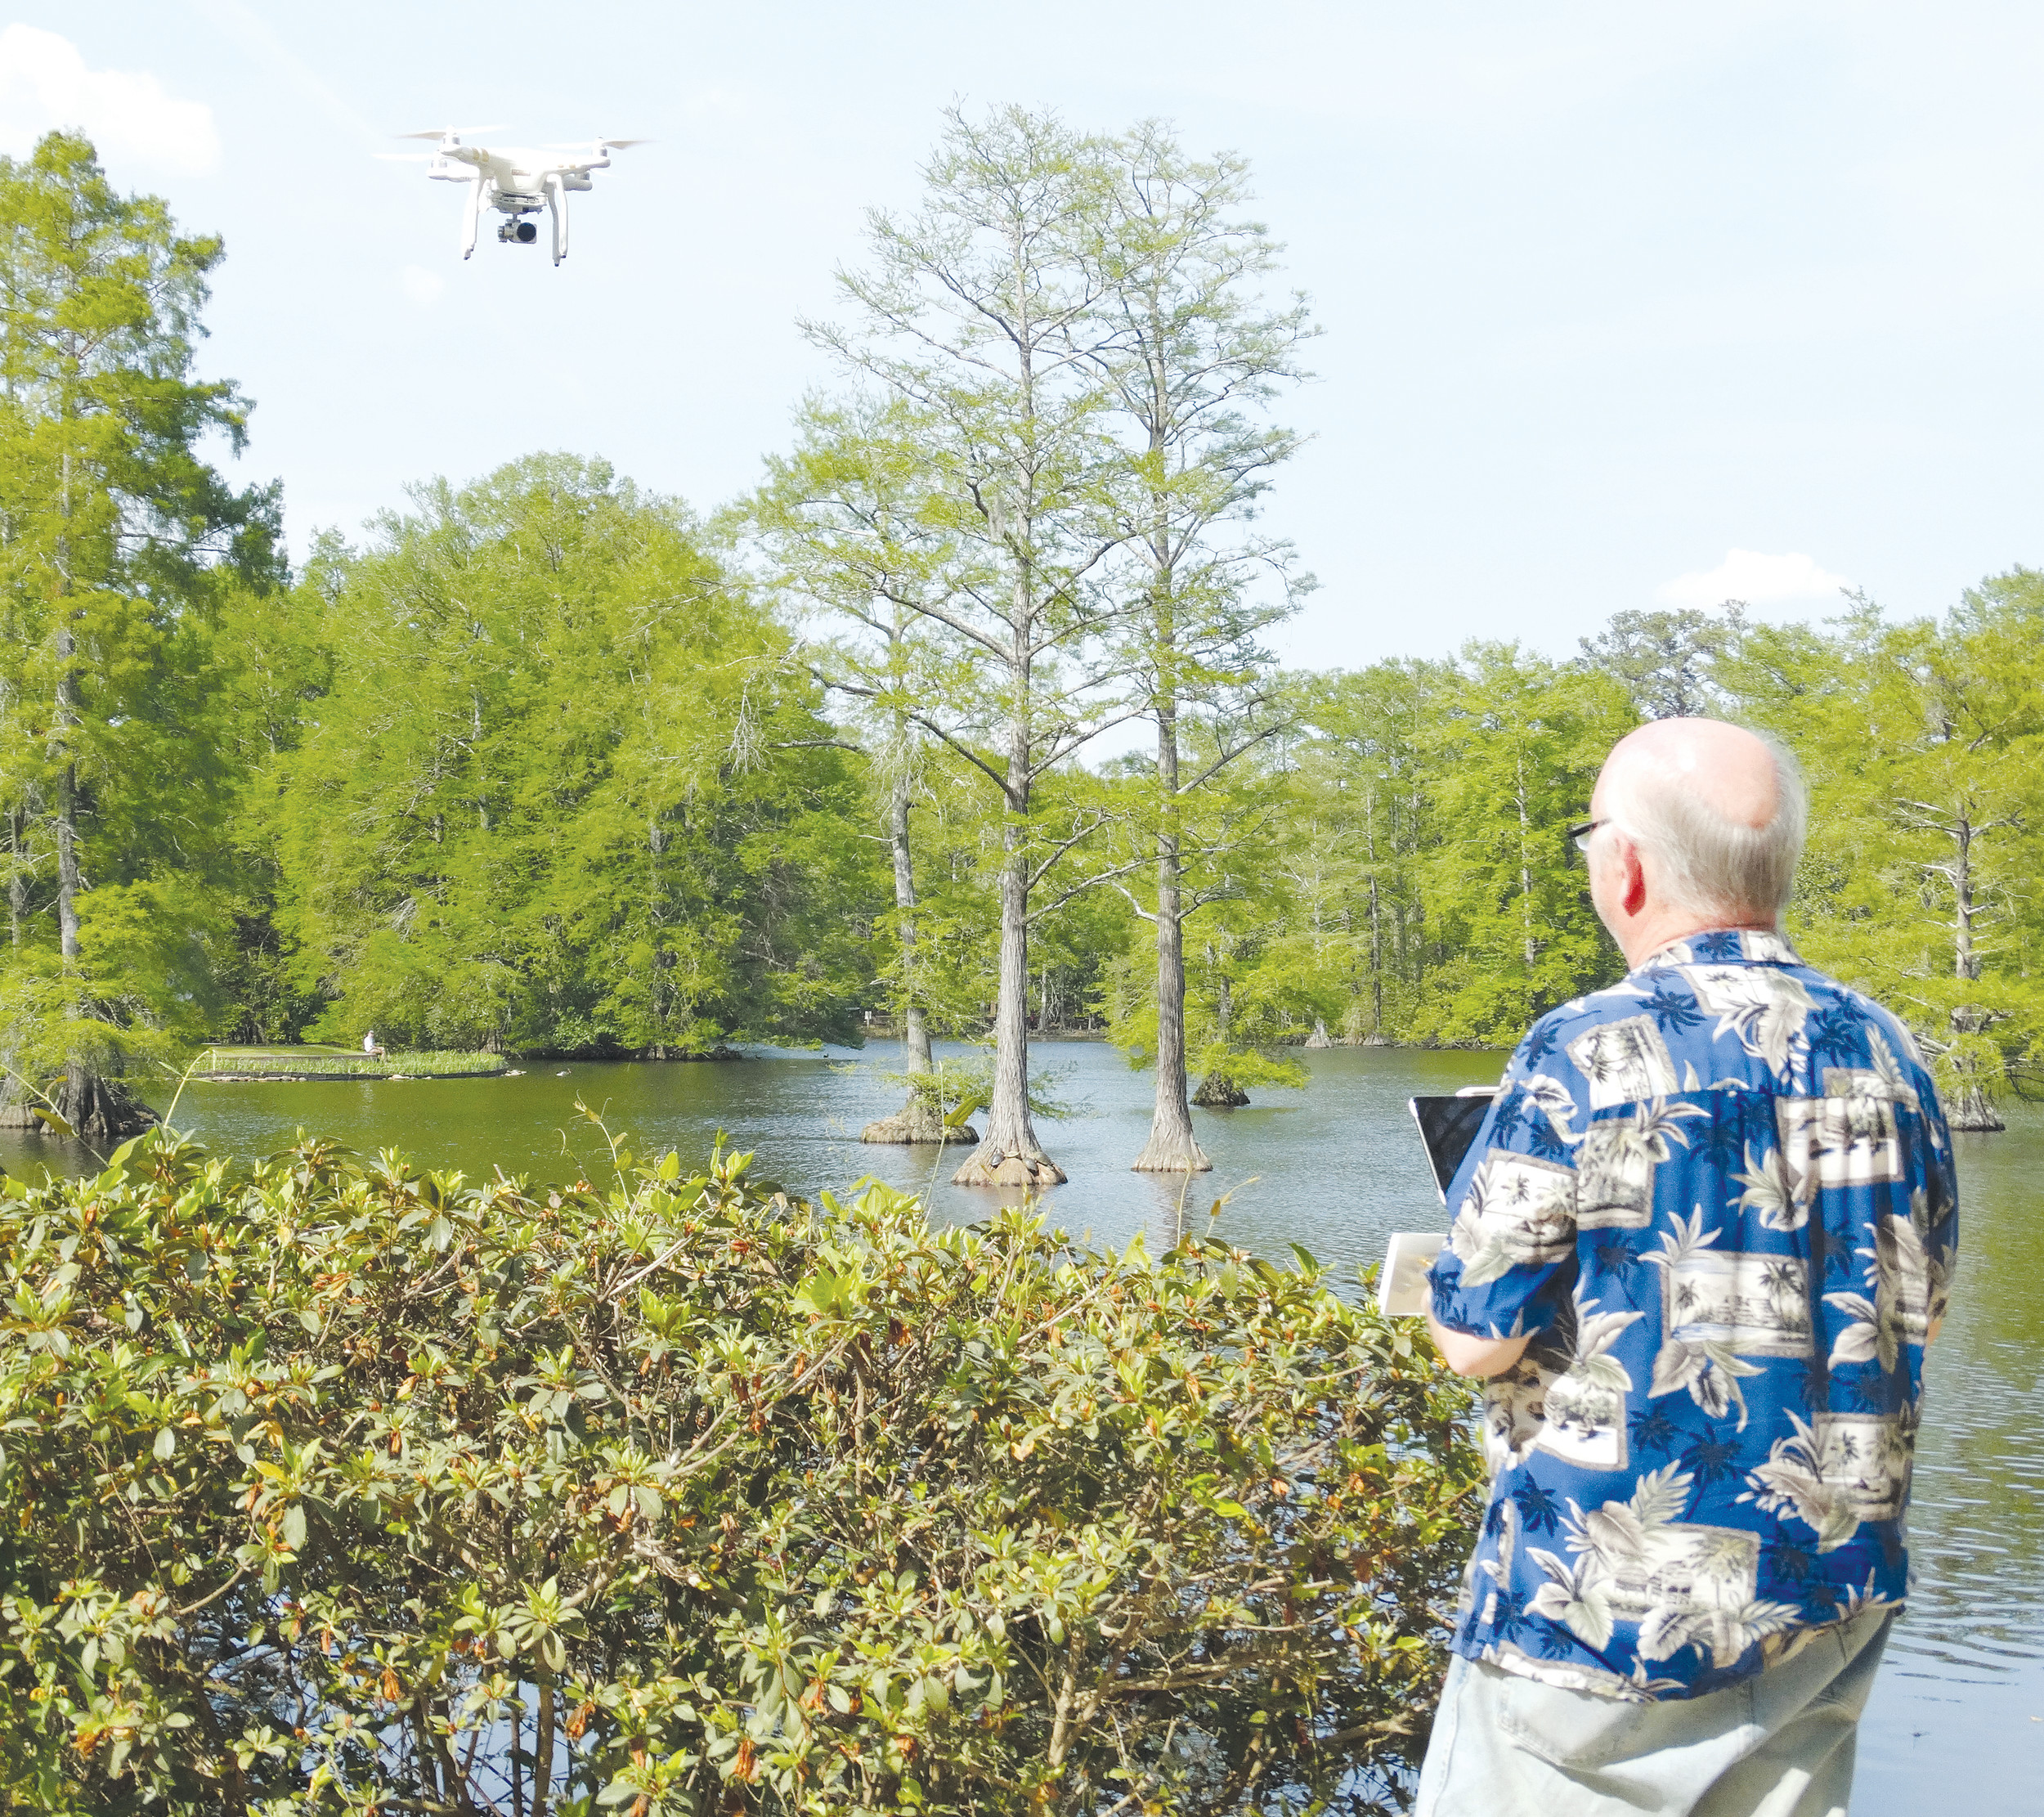 Hap Griffin, a nationally known astrophotographer, flies a drone on Saturday at Swan Lake-Iris Gardens. Griffin is making a video of Sumter landmarks, including the gardens, and was capturing video of specific parts of the gardens.